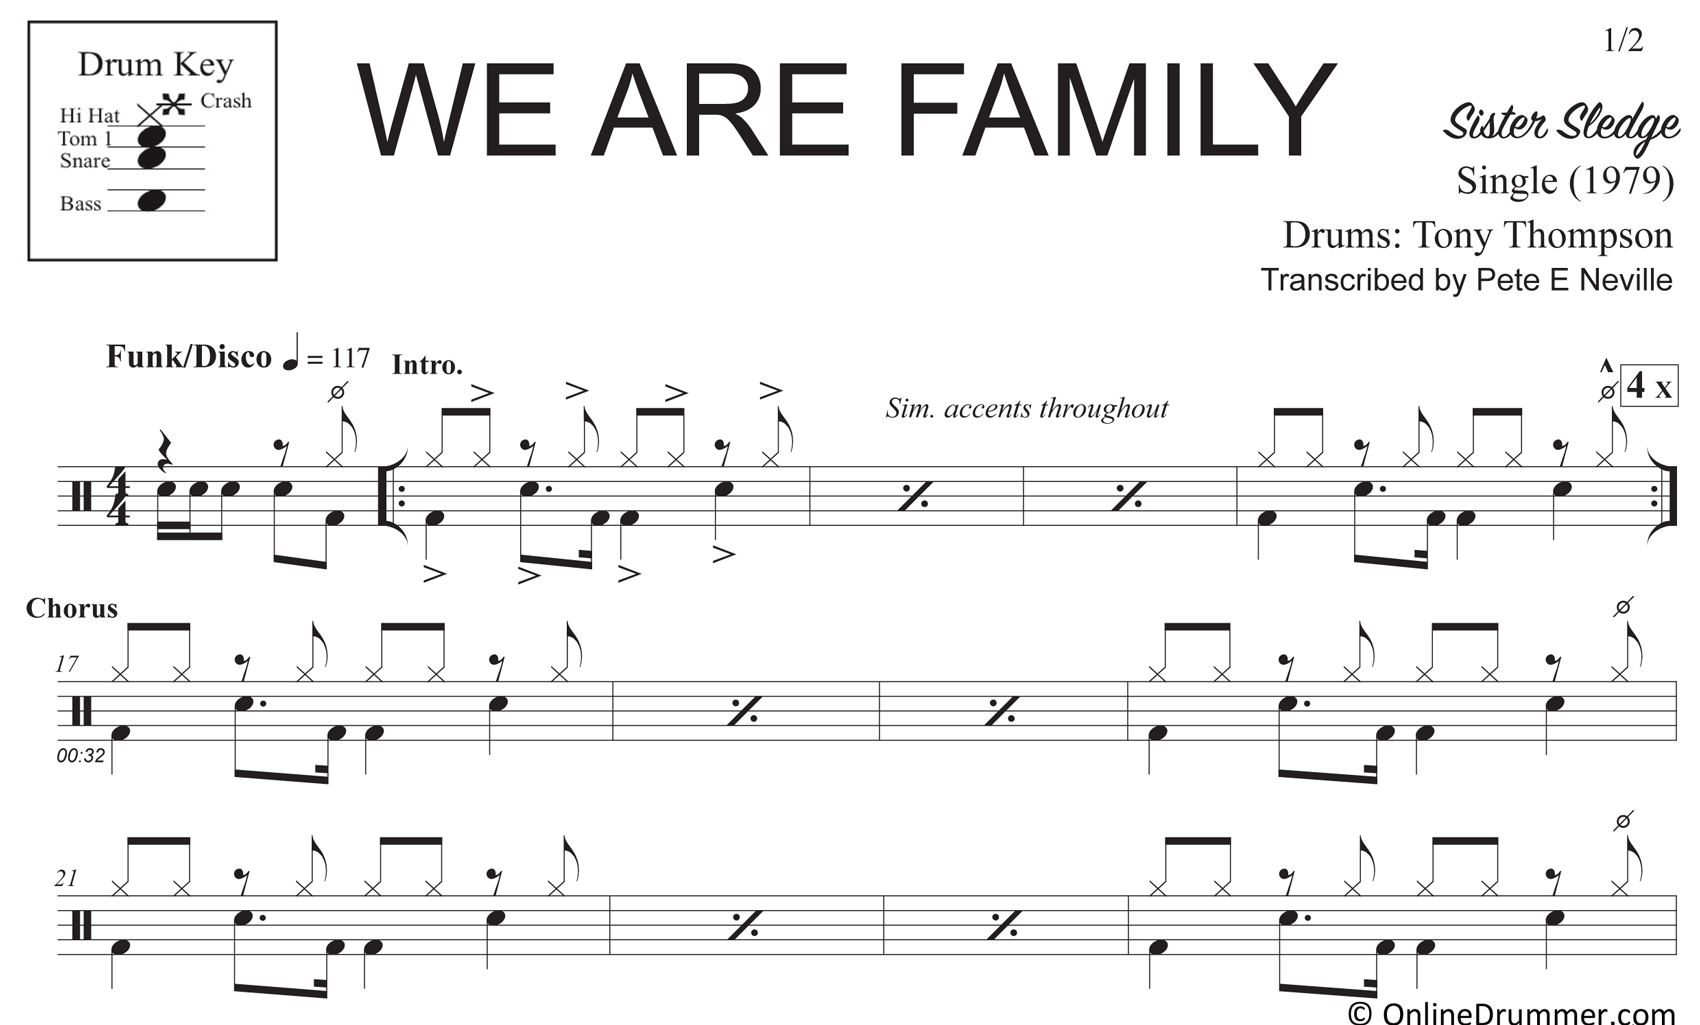 We Are Family - Sister Sledge - Drum Sheet Music